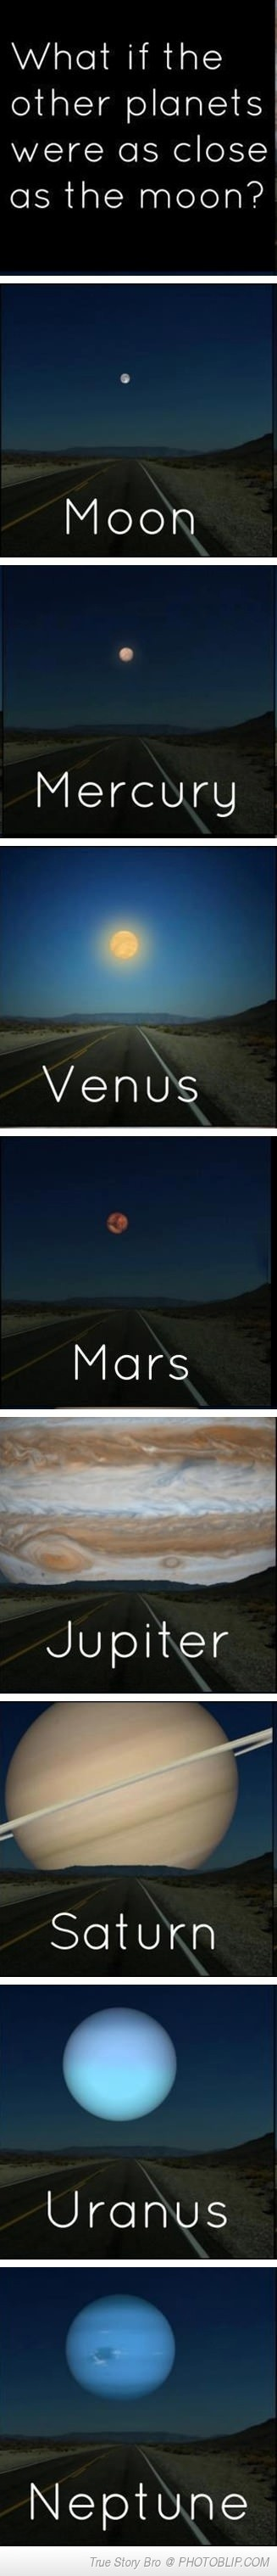 If the Planets were as close to earth as the moon.  I would have liked to see Pluto added, even though it is not a planet.